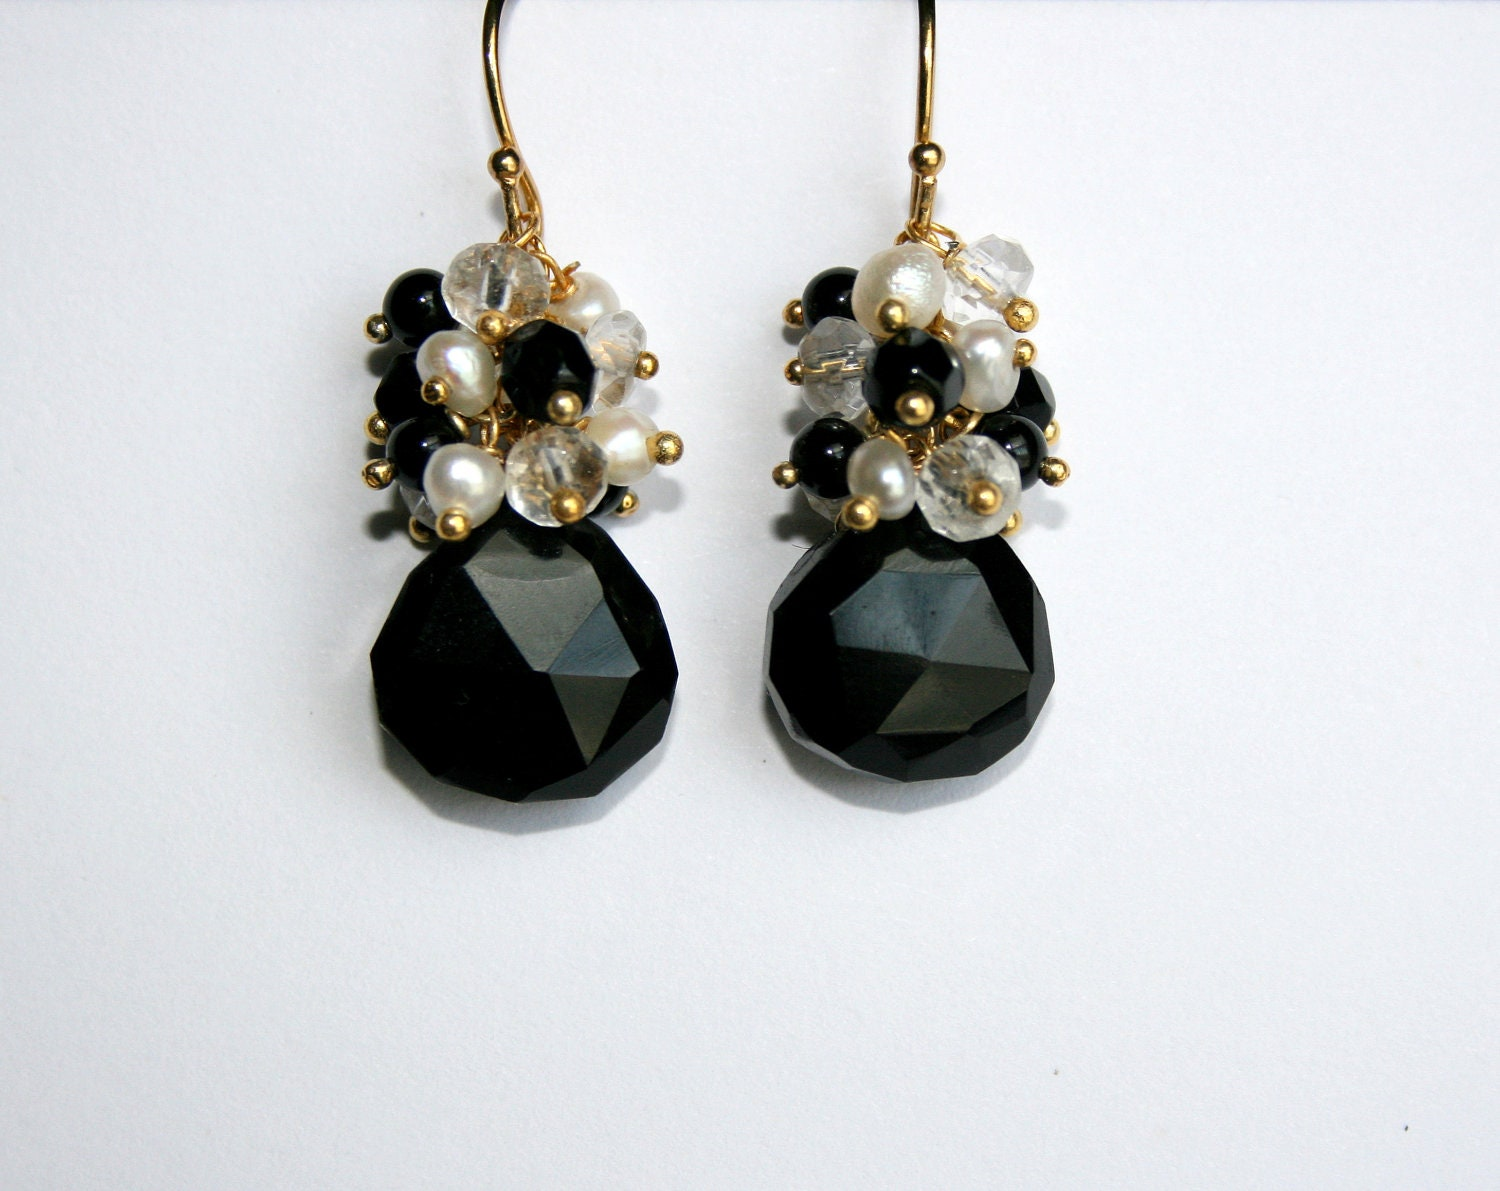 Onyx Teardrop Earrings, Black Gemstone Pearl Cluster, Gold Vermeil